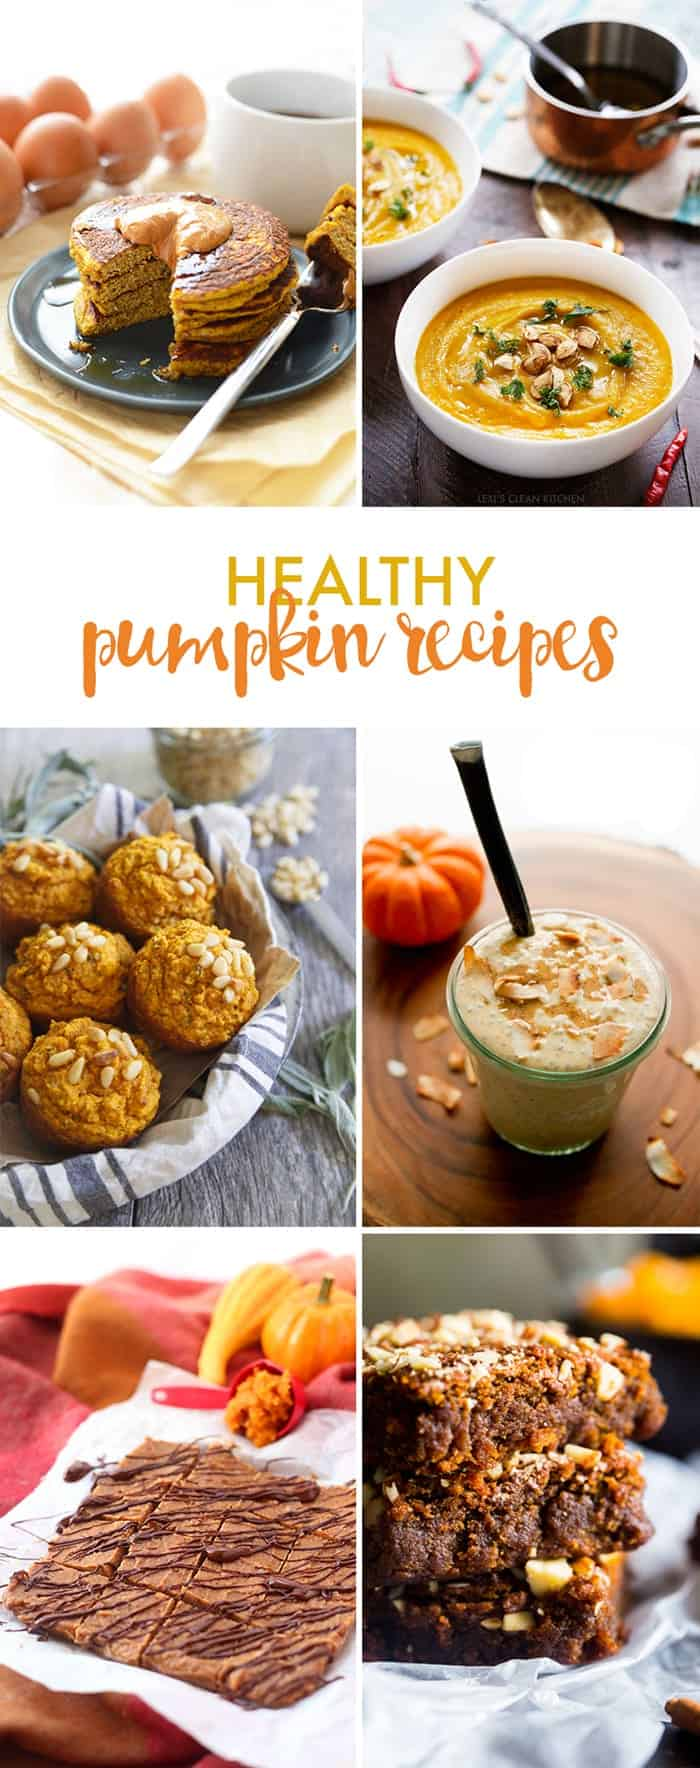 Have an open can of pumpkin in the fridge? Make one of these delicious, paleo-friendly pumpkin recipes for a festive fall recipe!